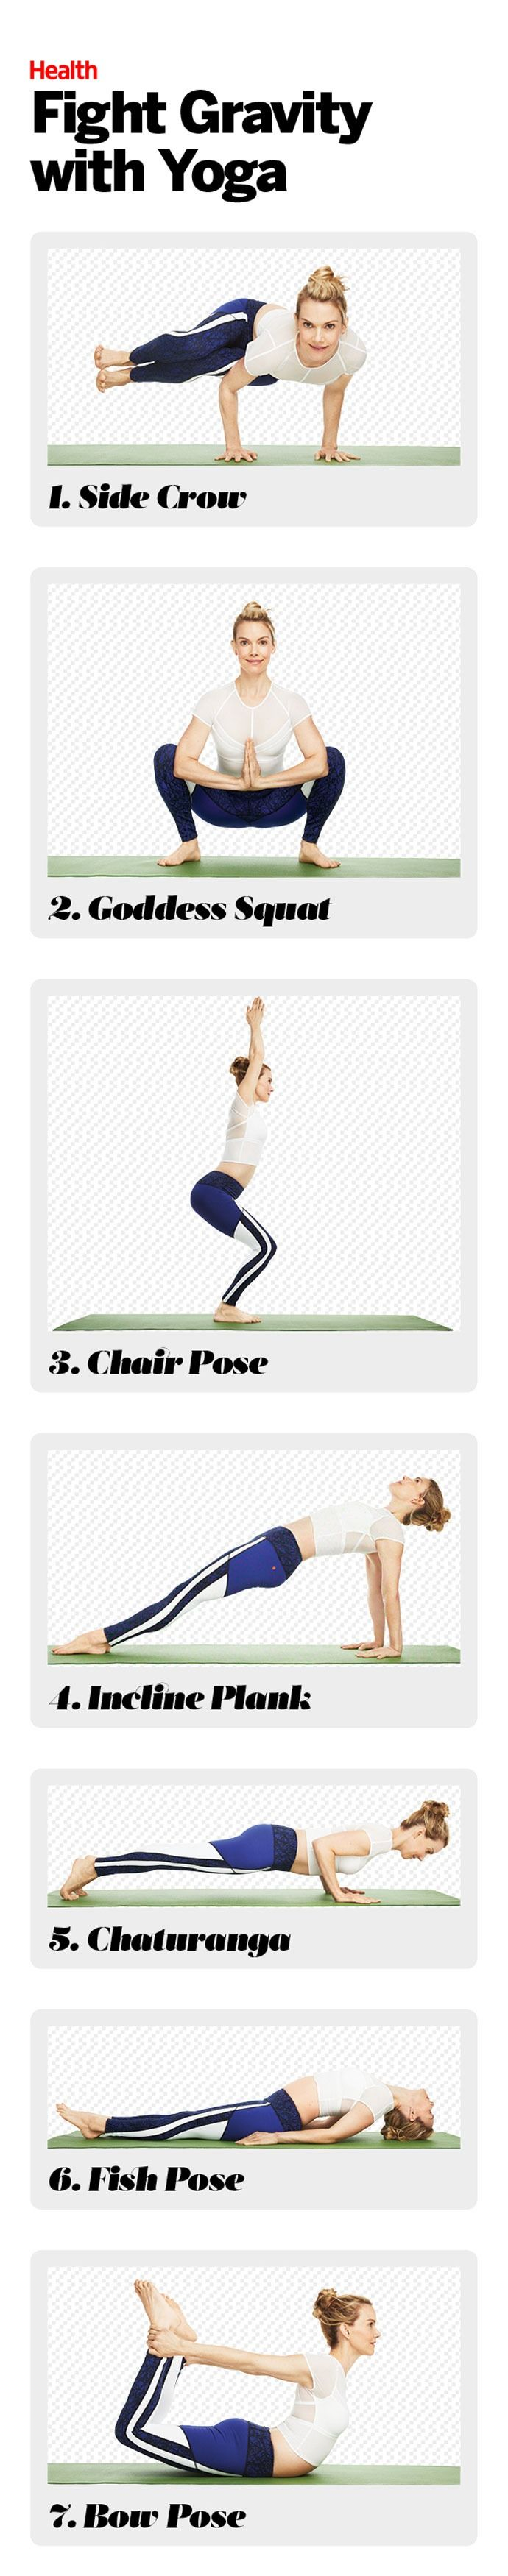 This anti-aging yoga workout will help you look years younger than you are. | Health.com